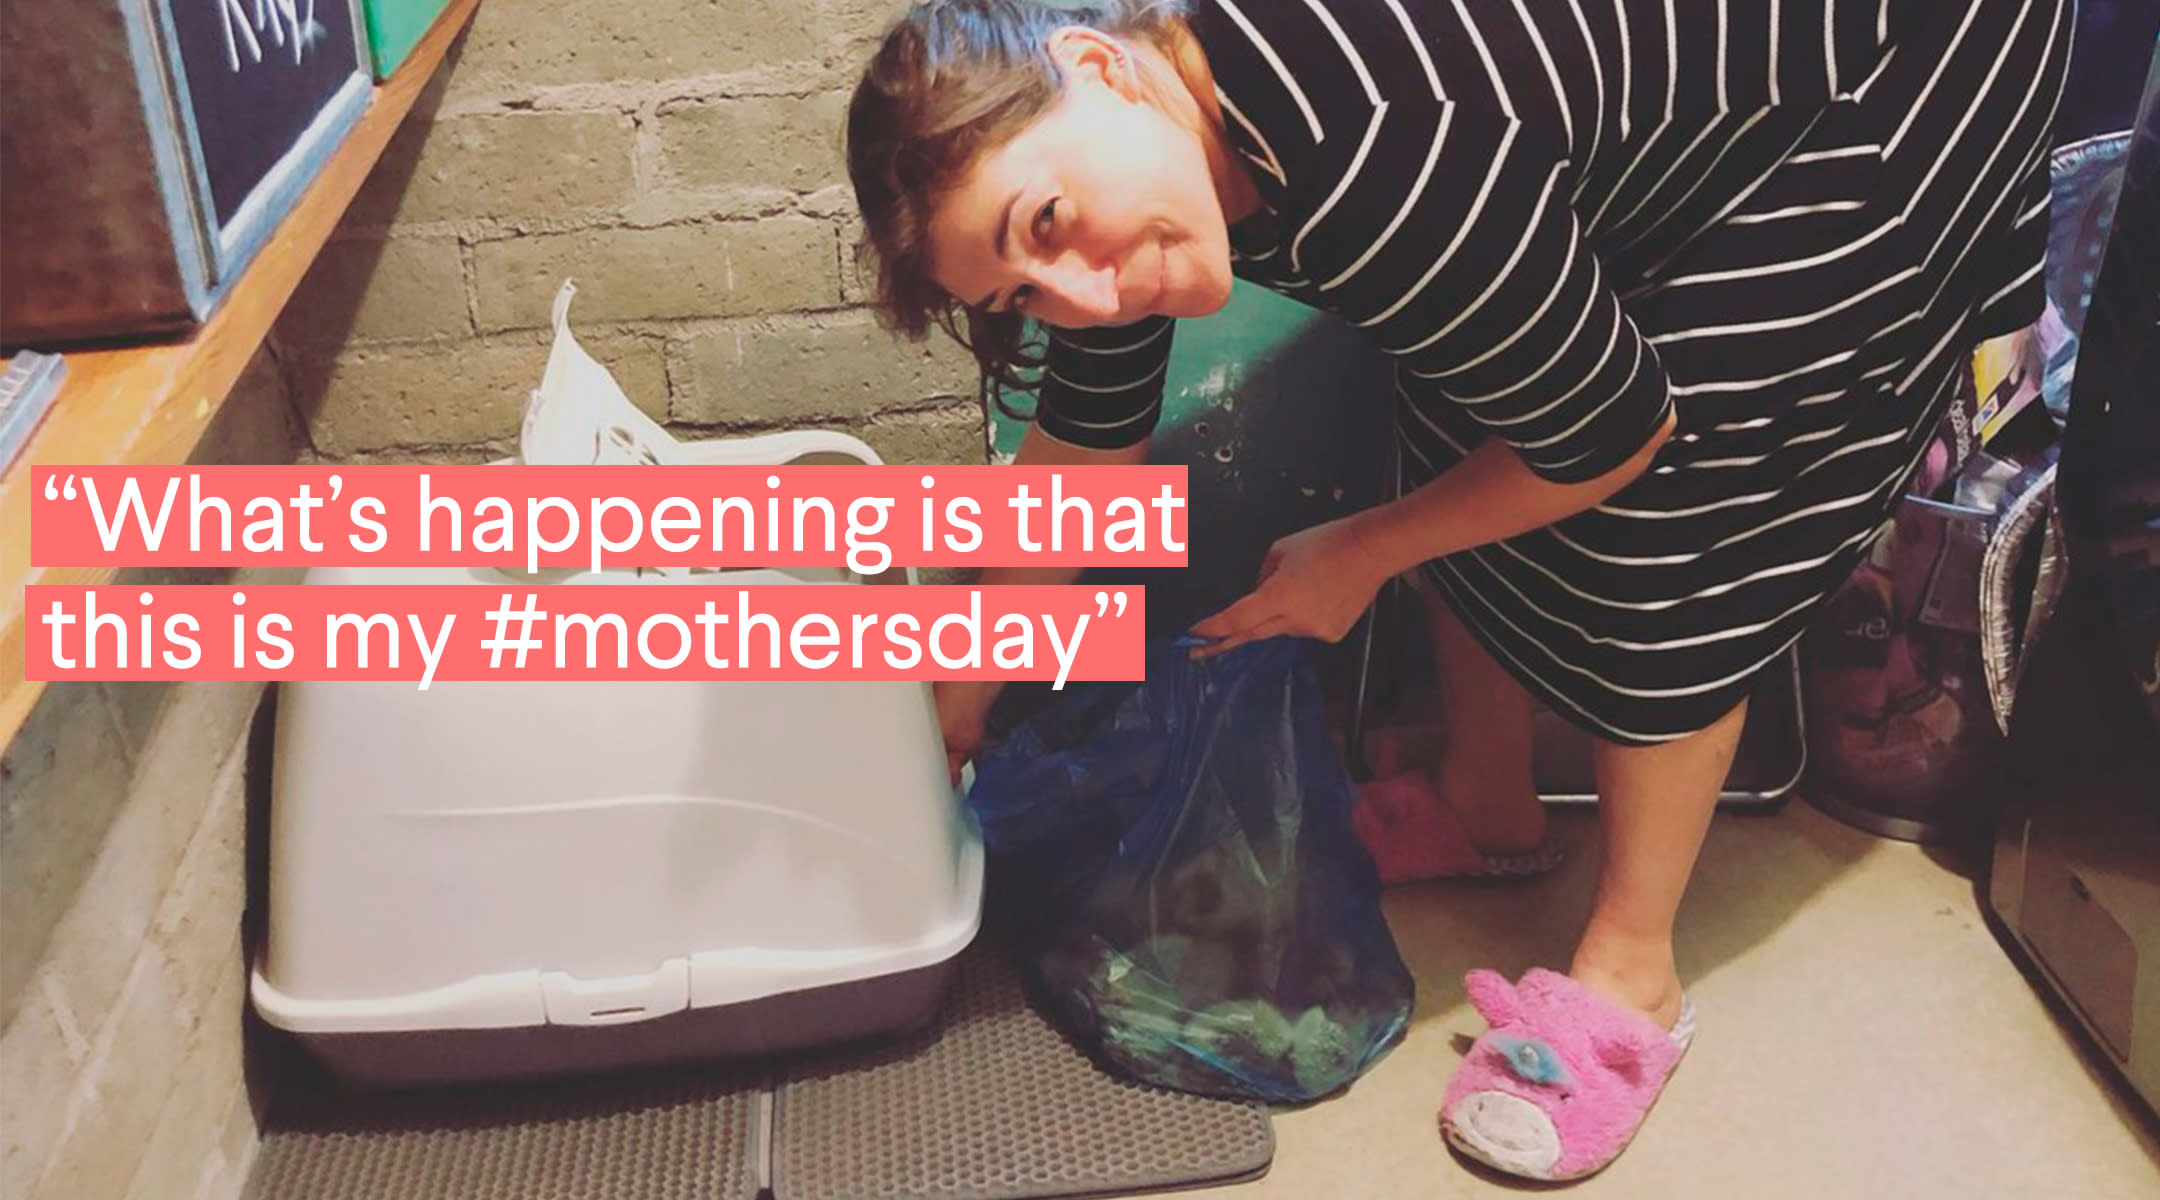 mayim bialik on mother's day